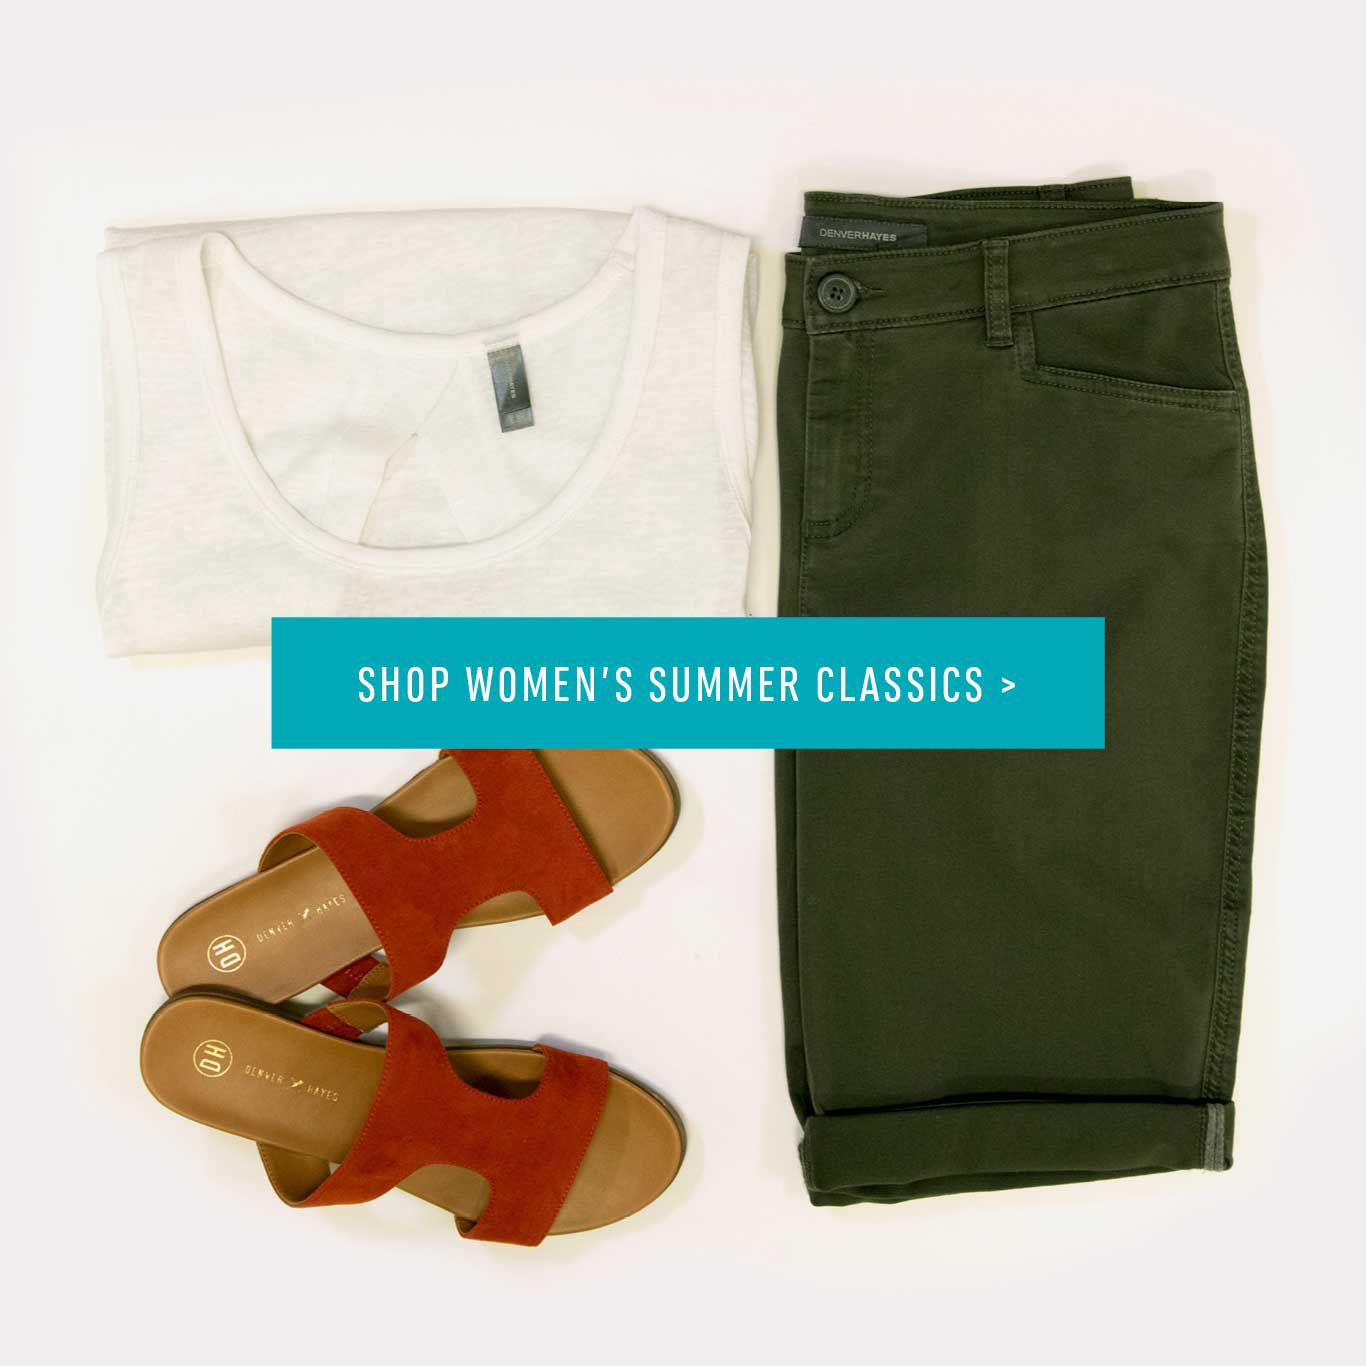 Shop Women's Summer Classics Collection